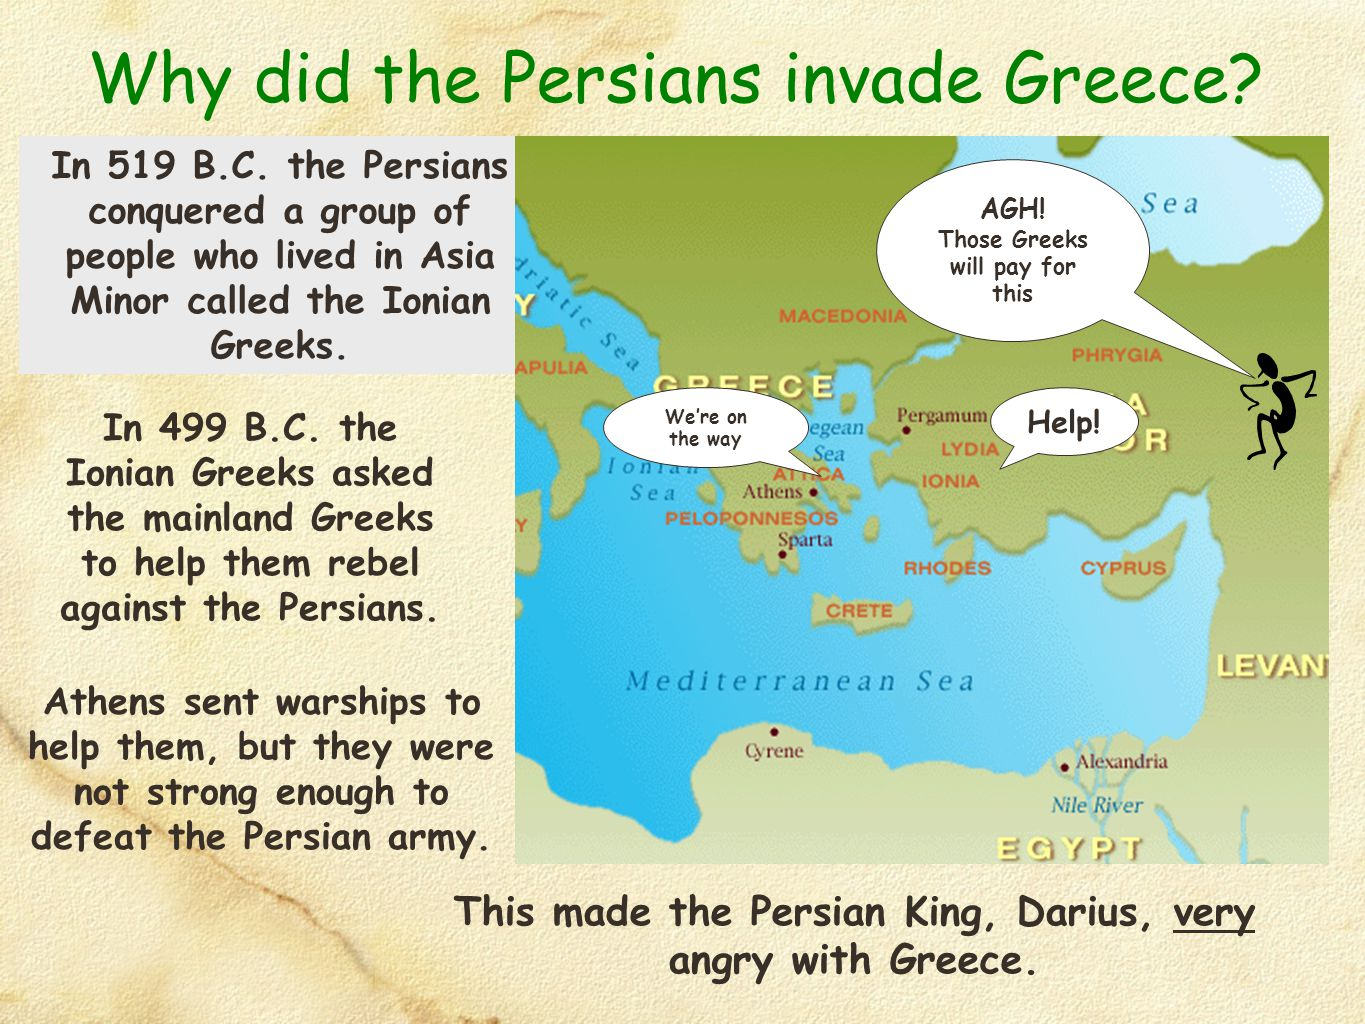 In 490 B.C.Darius sent 600 ships and thousands of soldiers to invade Greece.